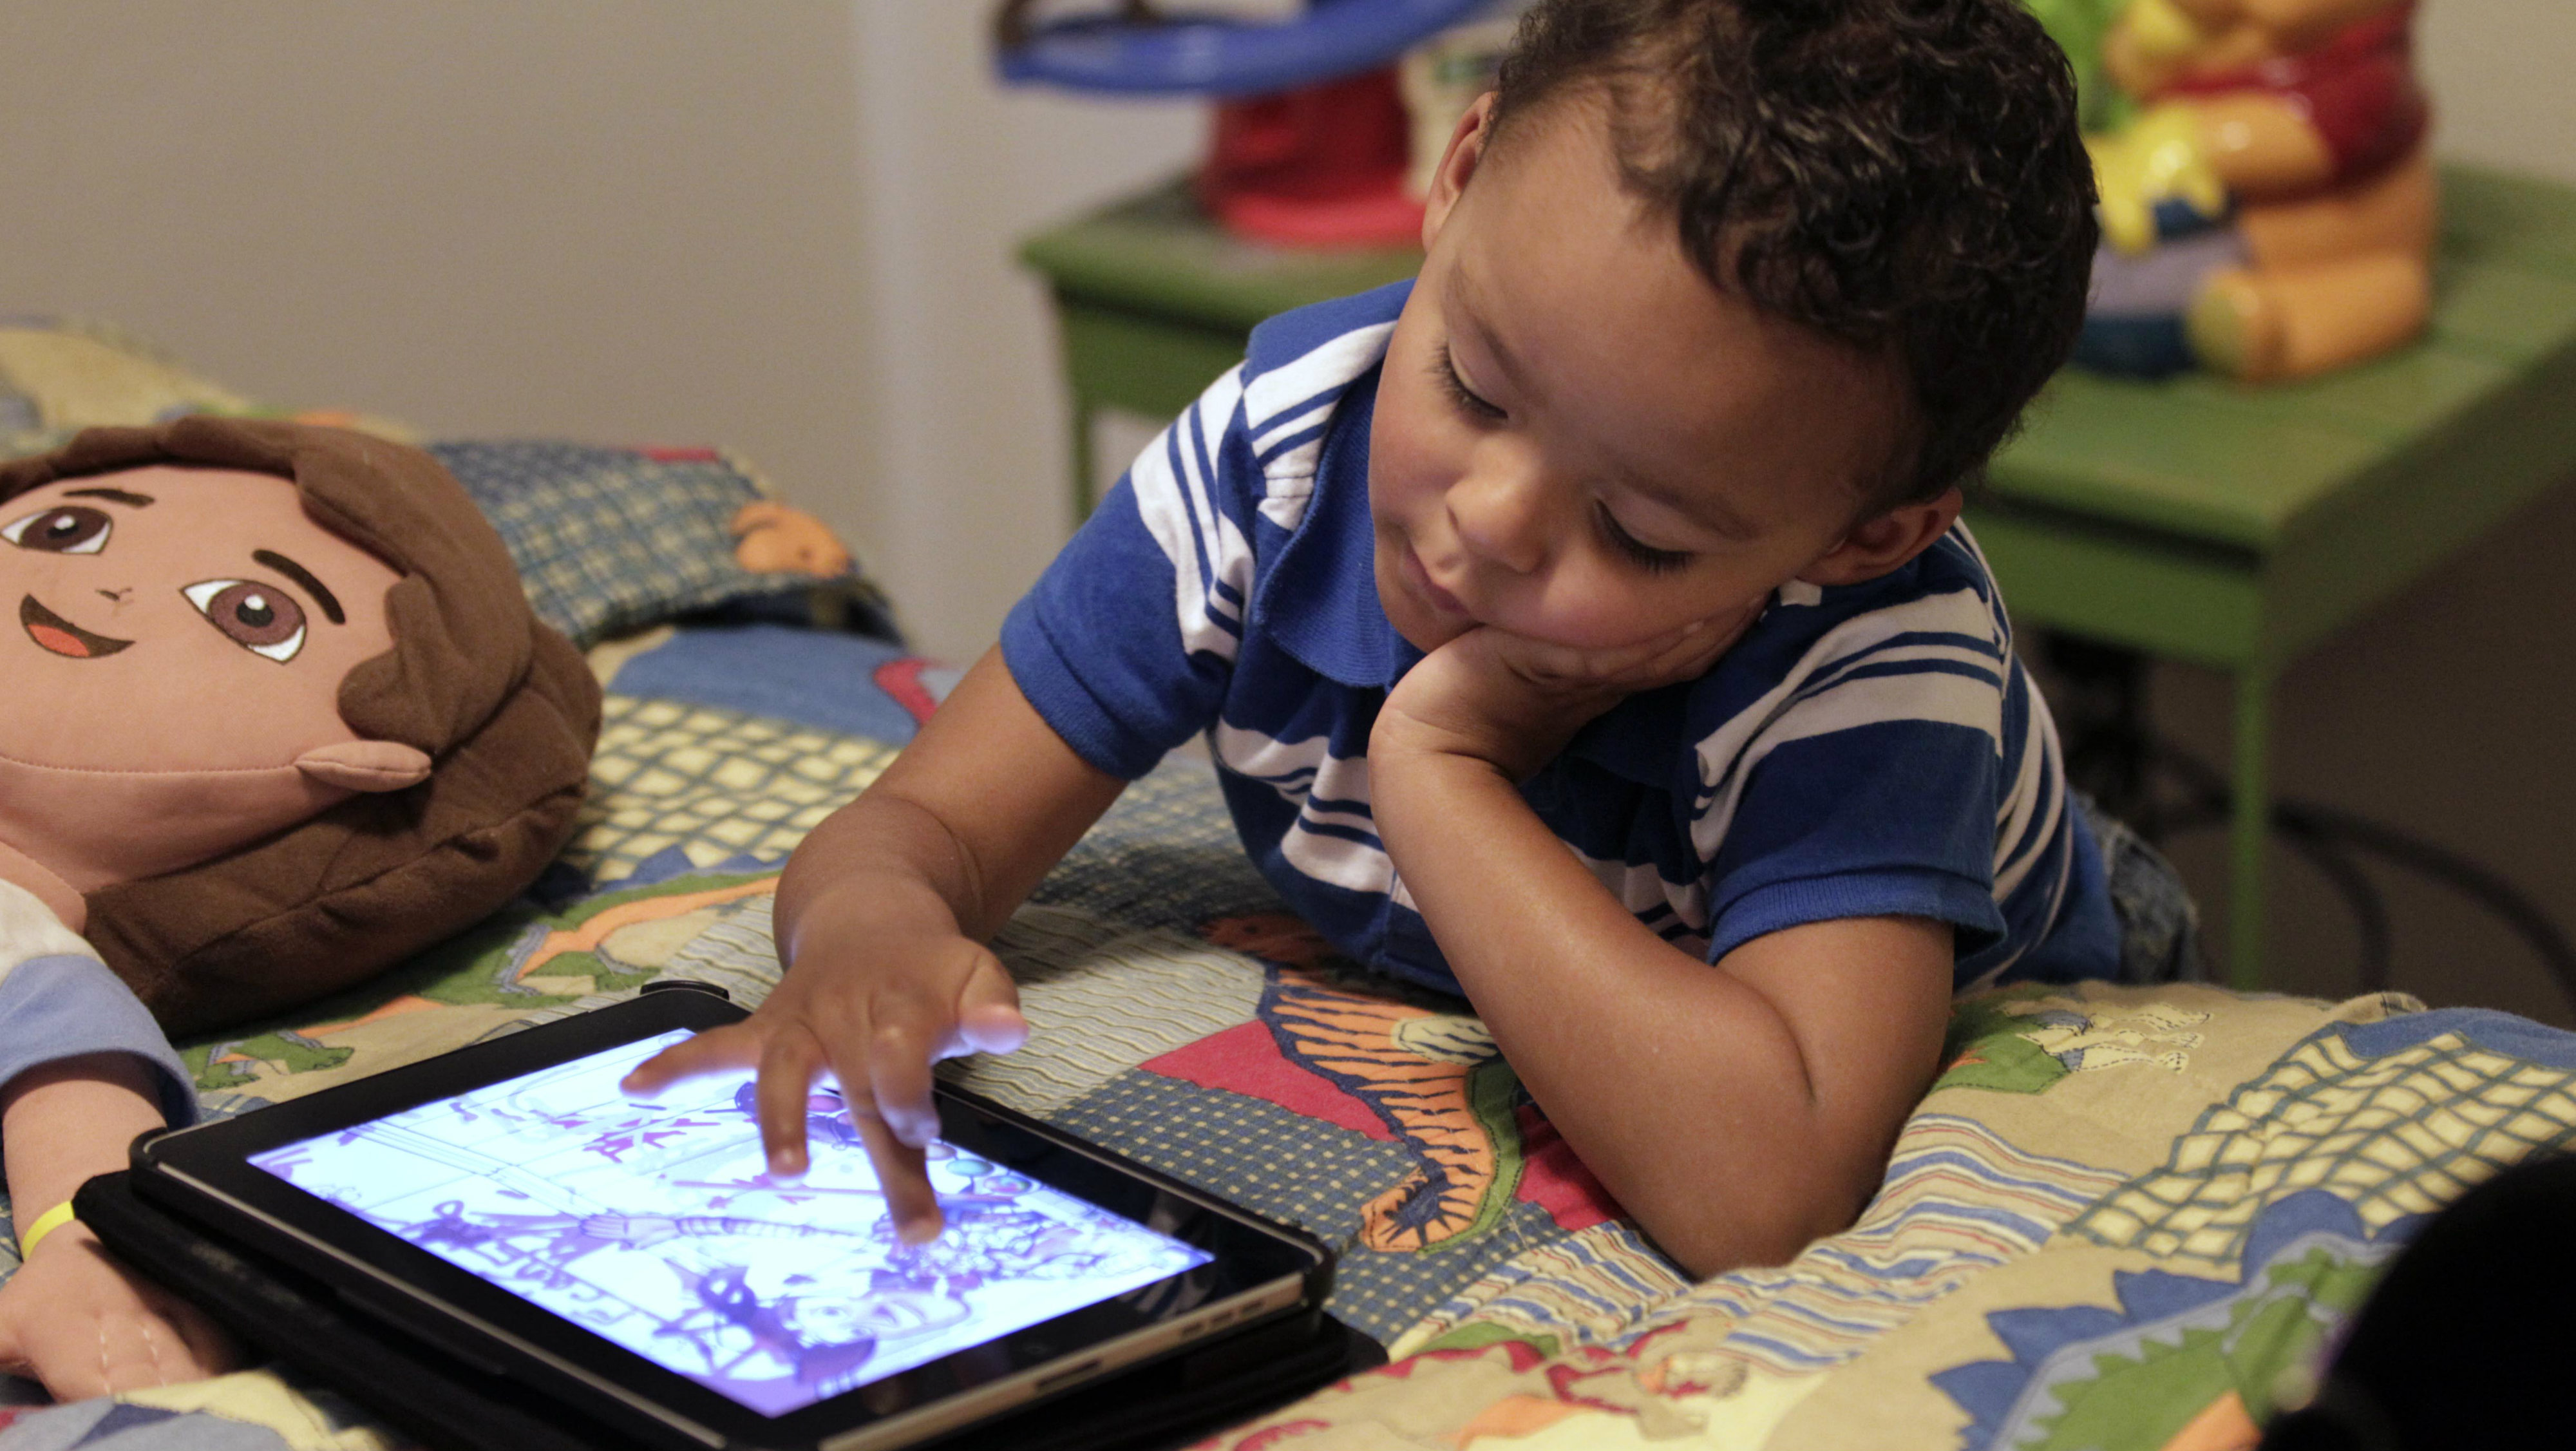 In this Friday, Oct. 21, 2011 file photo, Frankie Thevenot, 3, plays with an iPad in his bedroom at his home in Metairie, La. As of Wednesday, Aug. 7, 2013, the Campaign for a Commercial-Free Childhood, a Boston-based group, is urging federal investigators to examine the marketing practices of Fisher-Price's and Open Solution's mobile apps.